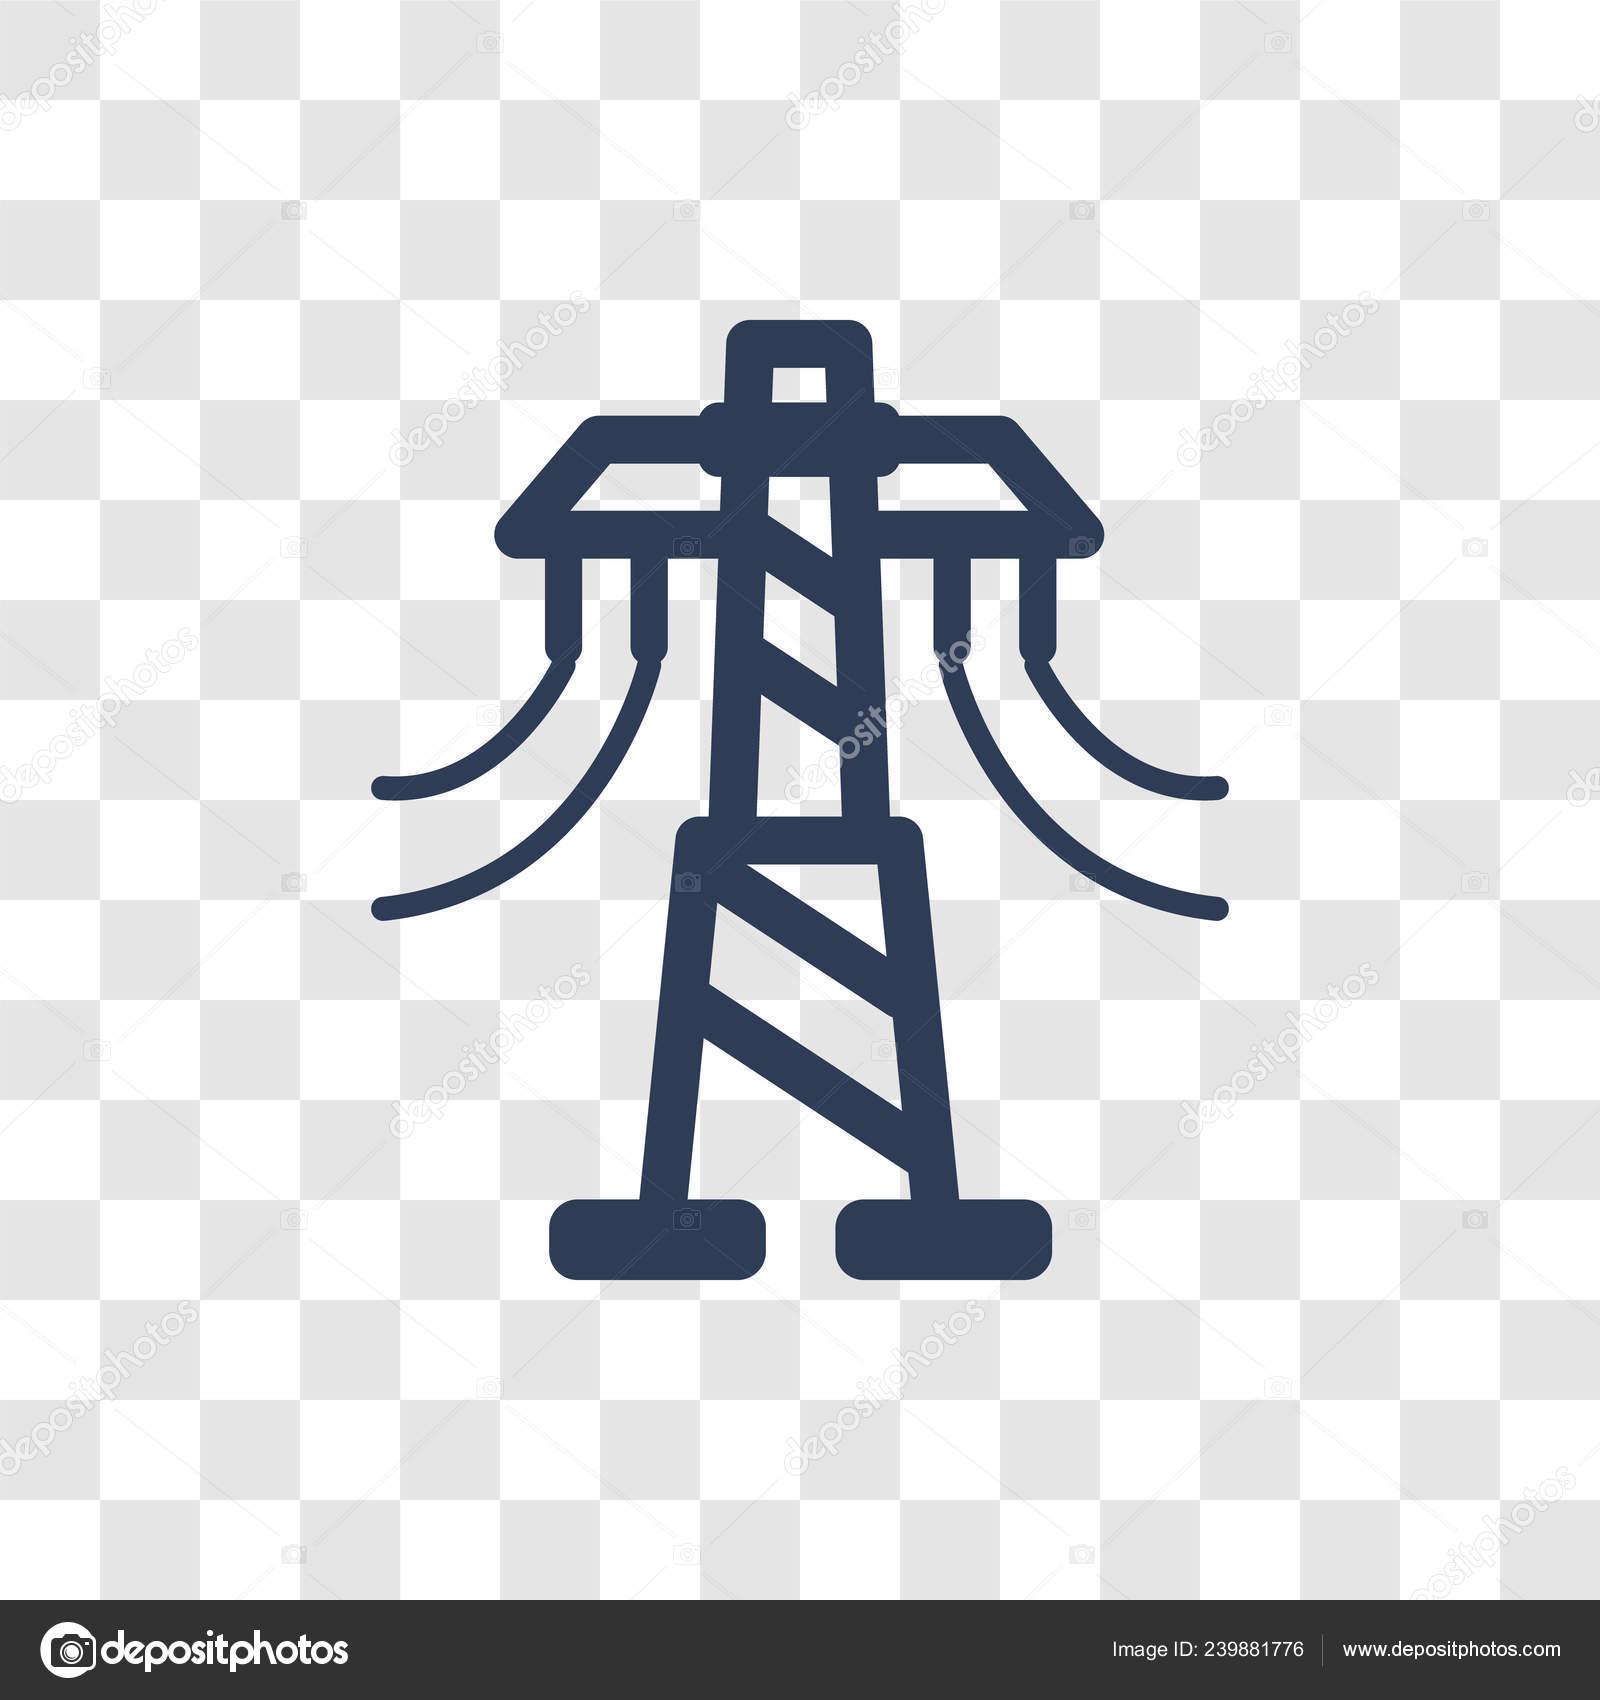 Transmission Tower Icon Trendy Transmission Tower Logo Concept Transparent Background Vector Image By C Bestvectorstock Vector Stock 239881776